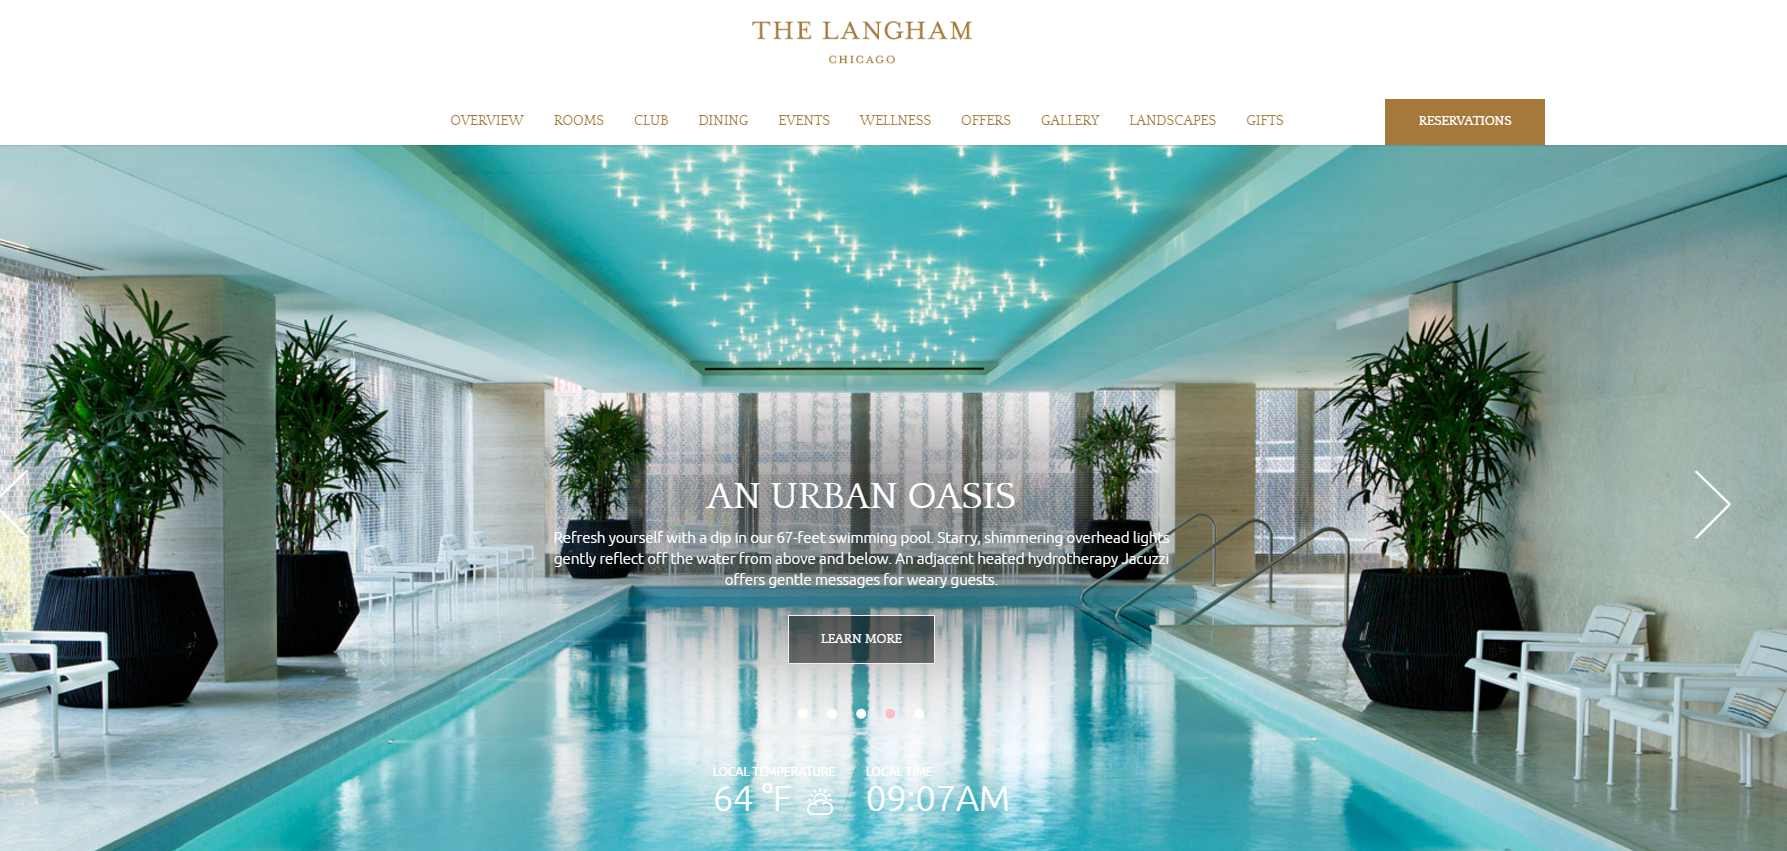 The Langham hotel website homepage